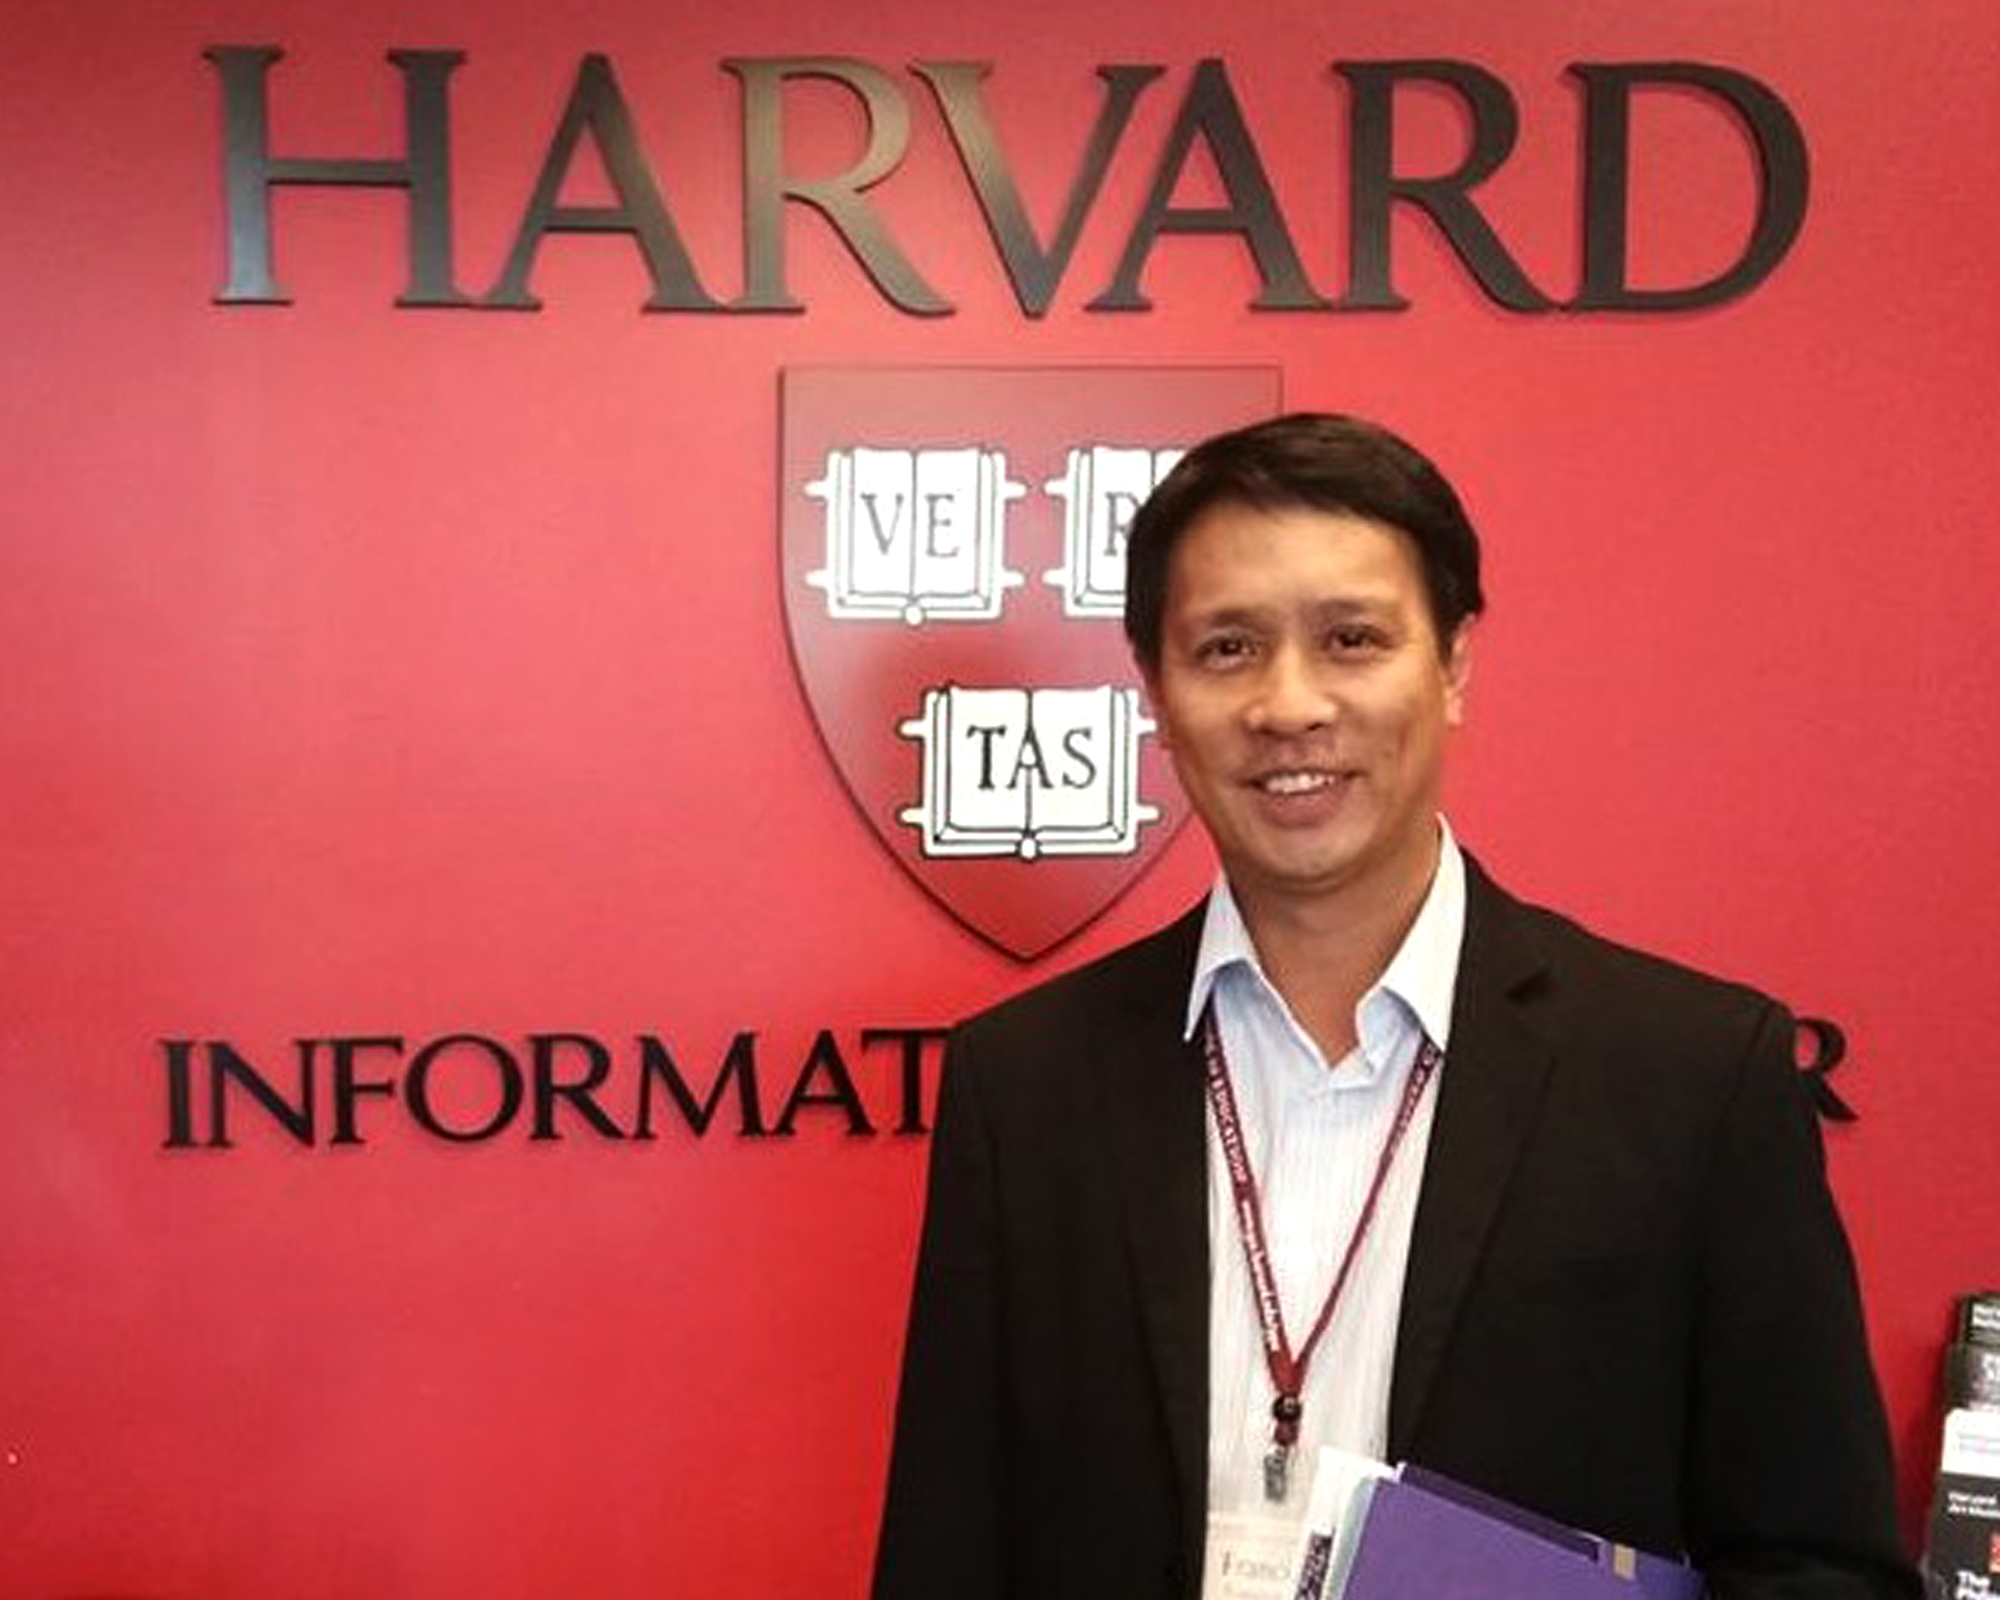 CAS faculty completes leadership course in Harvard